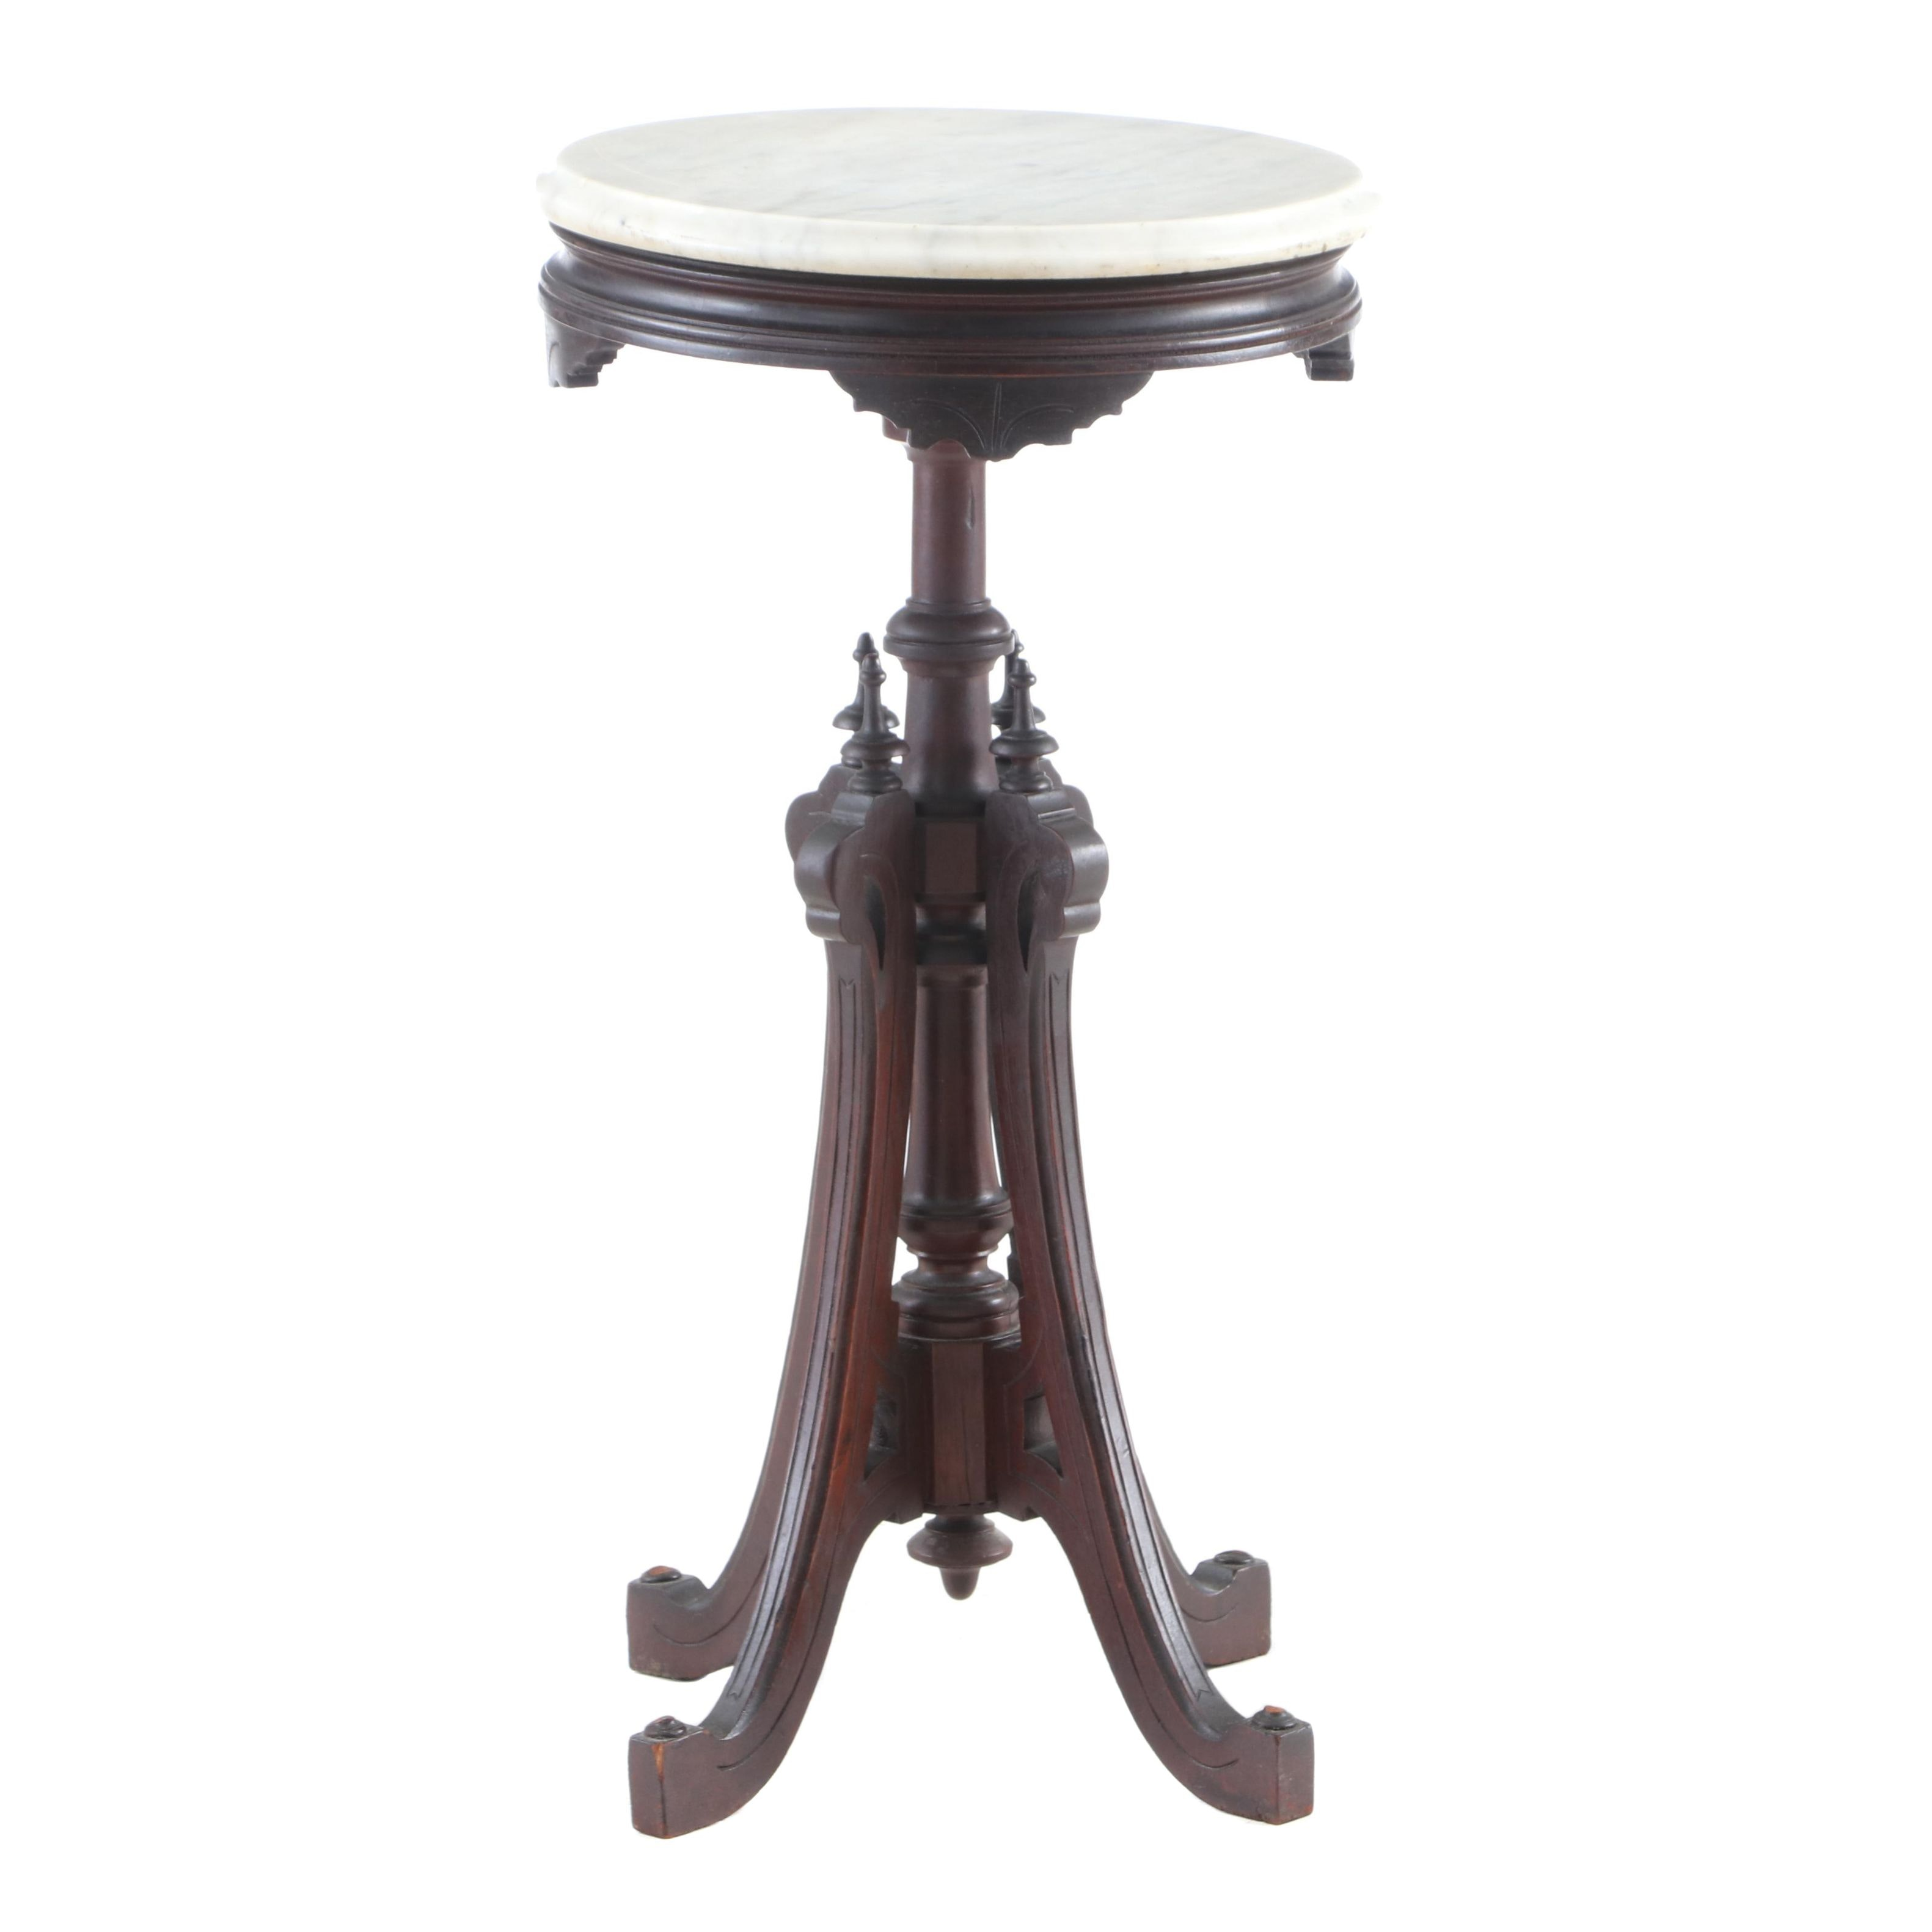 Victorian Marble and Mahogany Side Table, Mid-19th Century